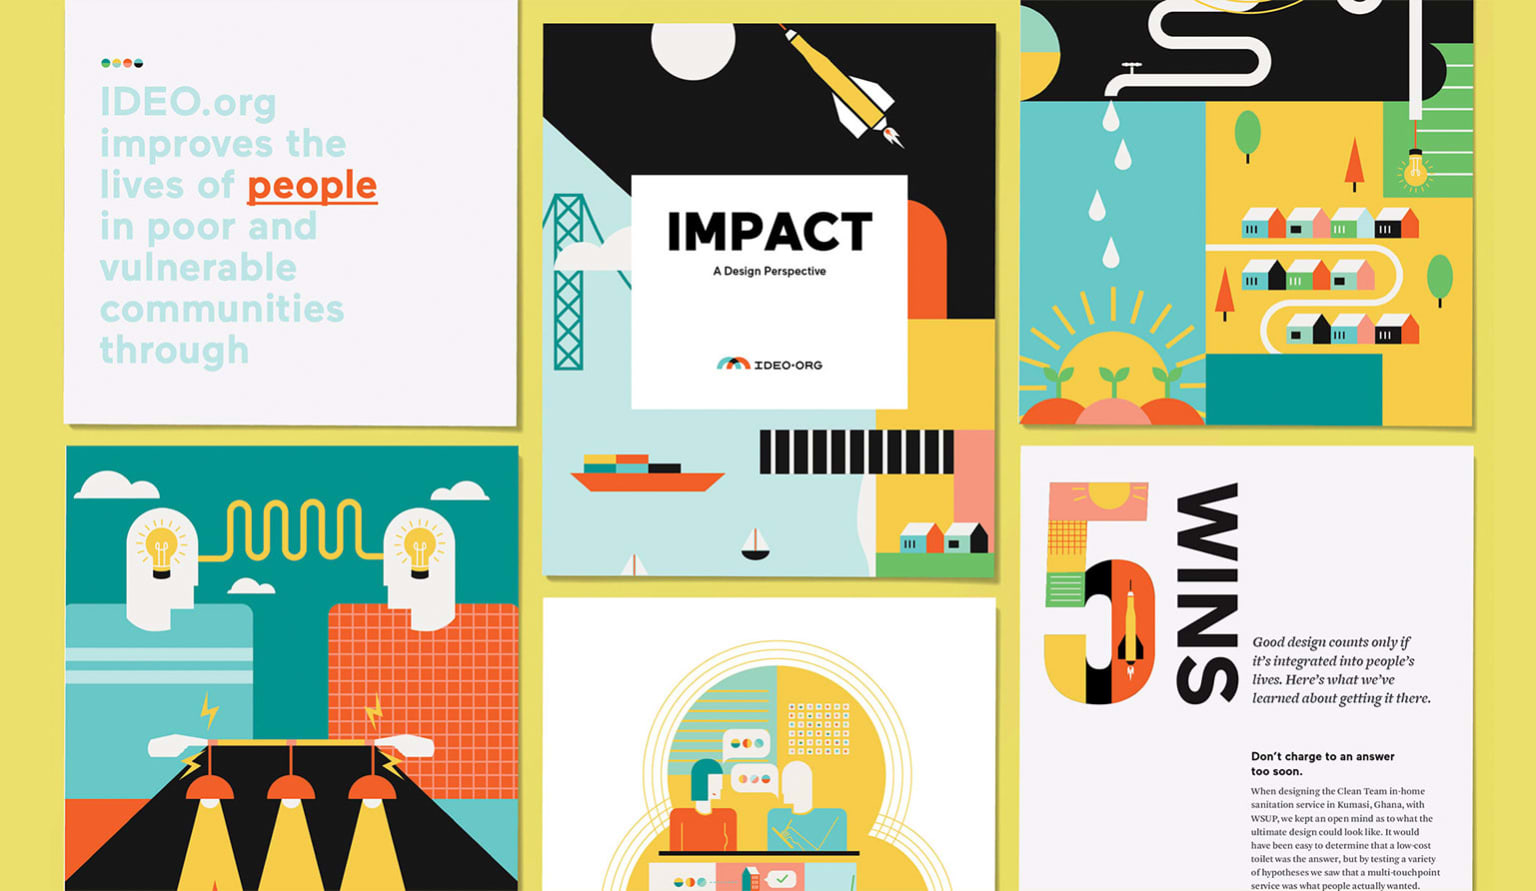 Impact: A Design Perspective